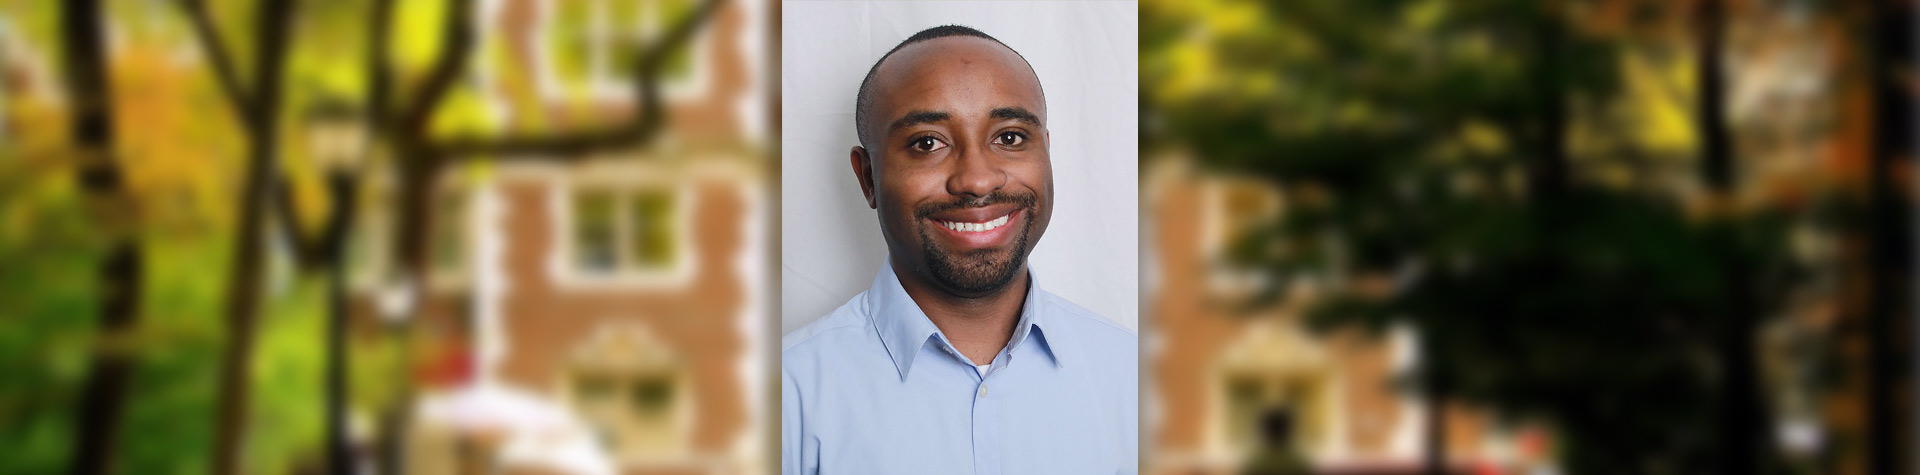 DaJuan Ferrell accepted position at the University of Pennsylvania's Critical Writing Program